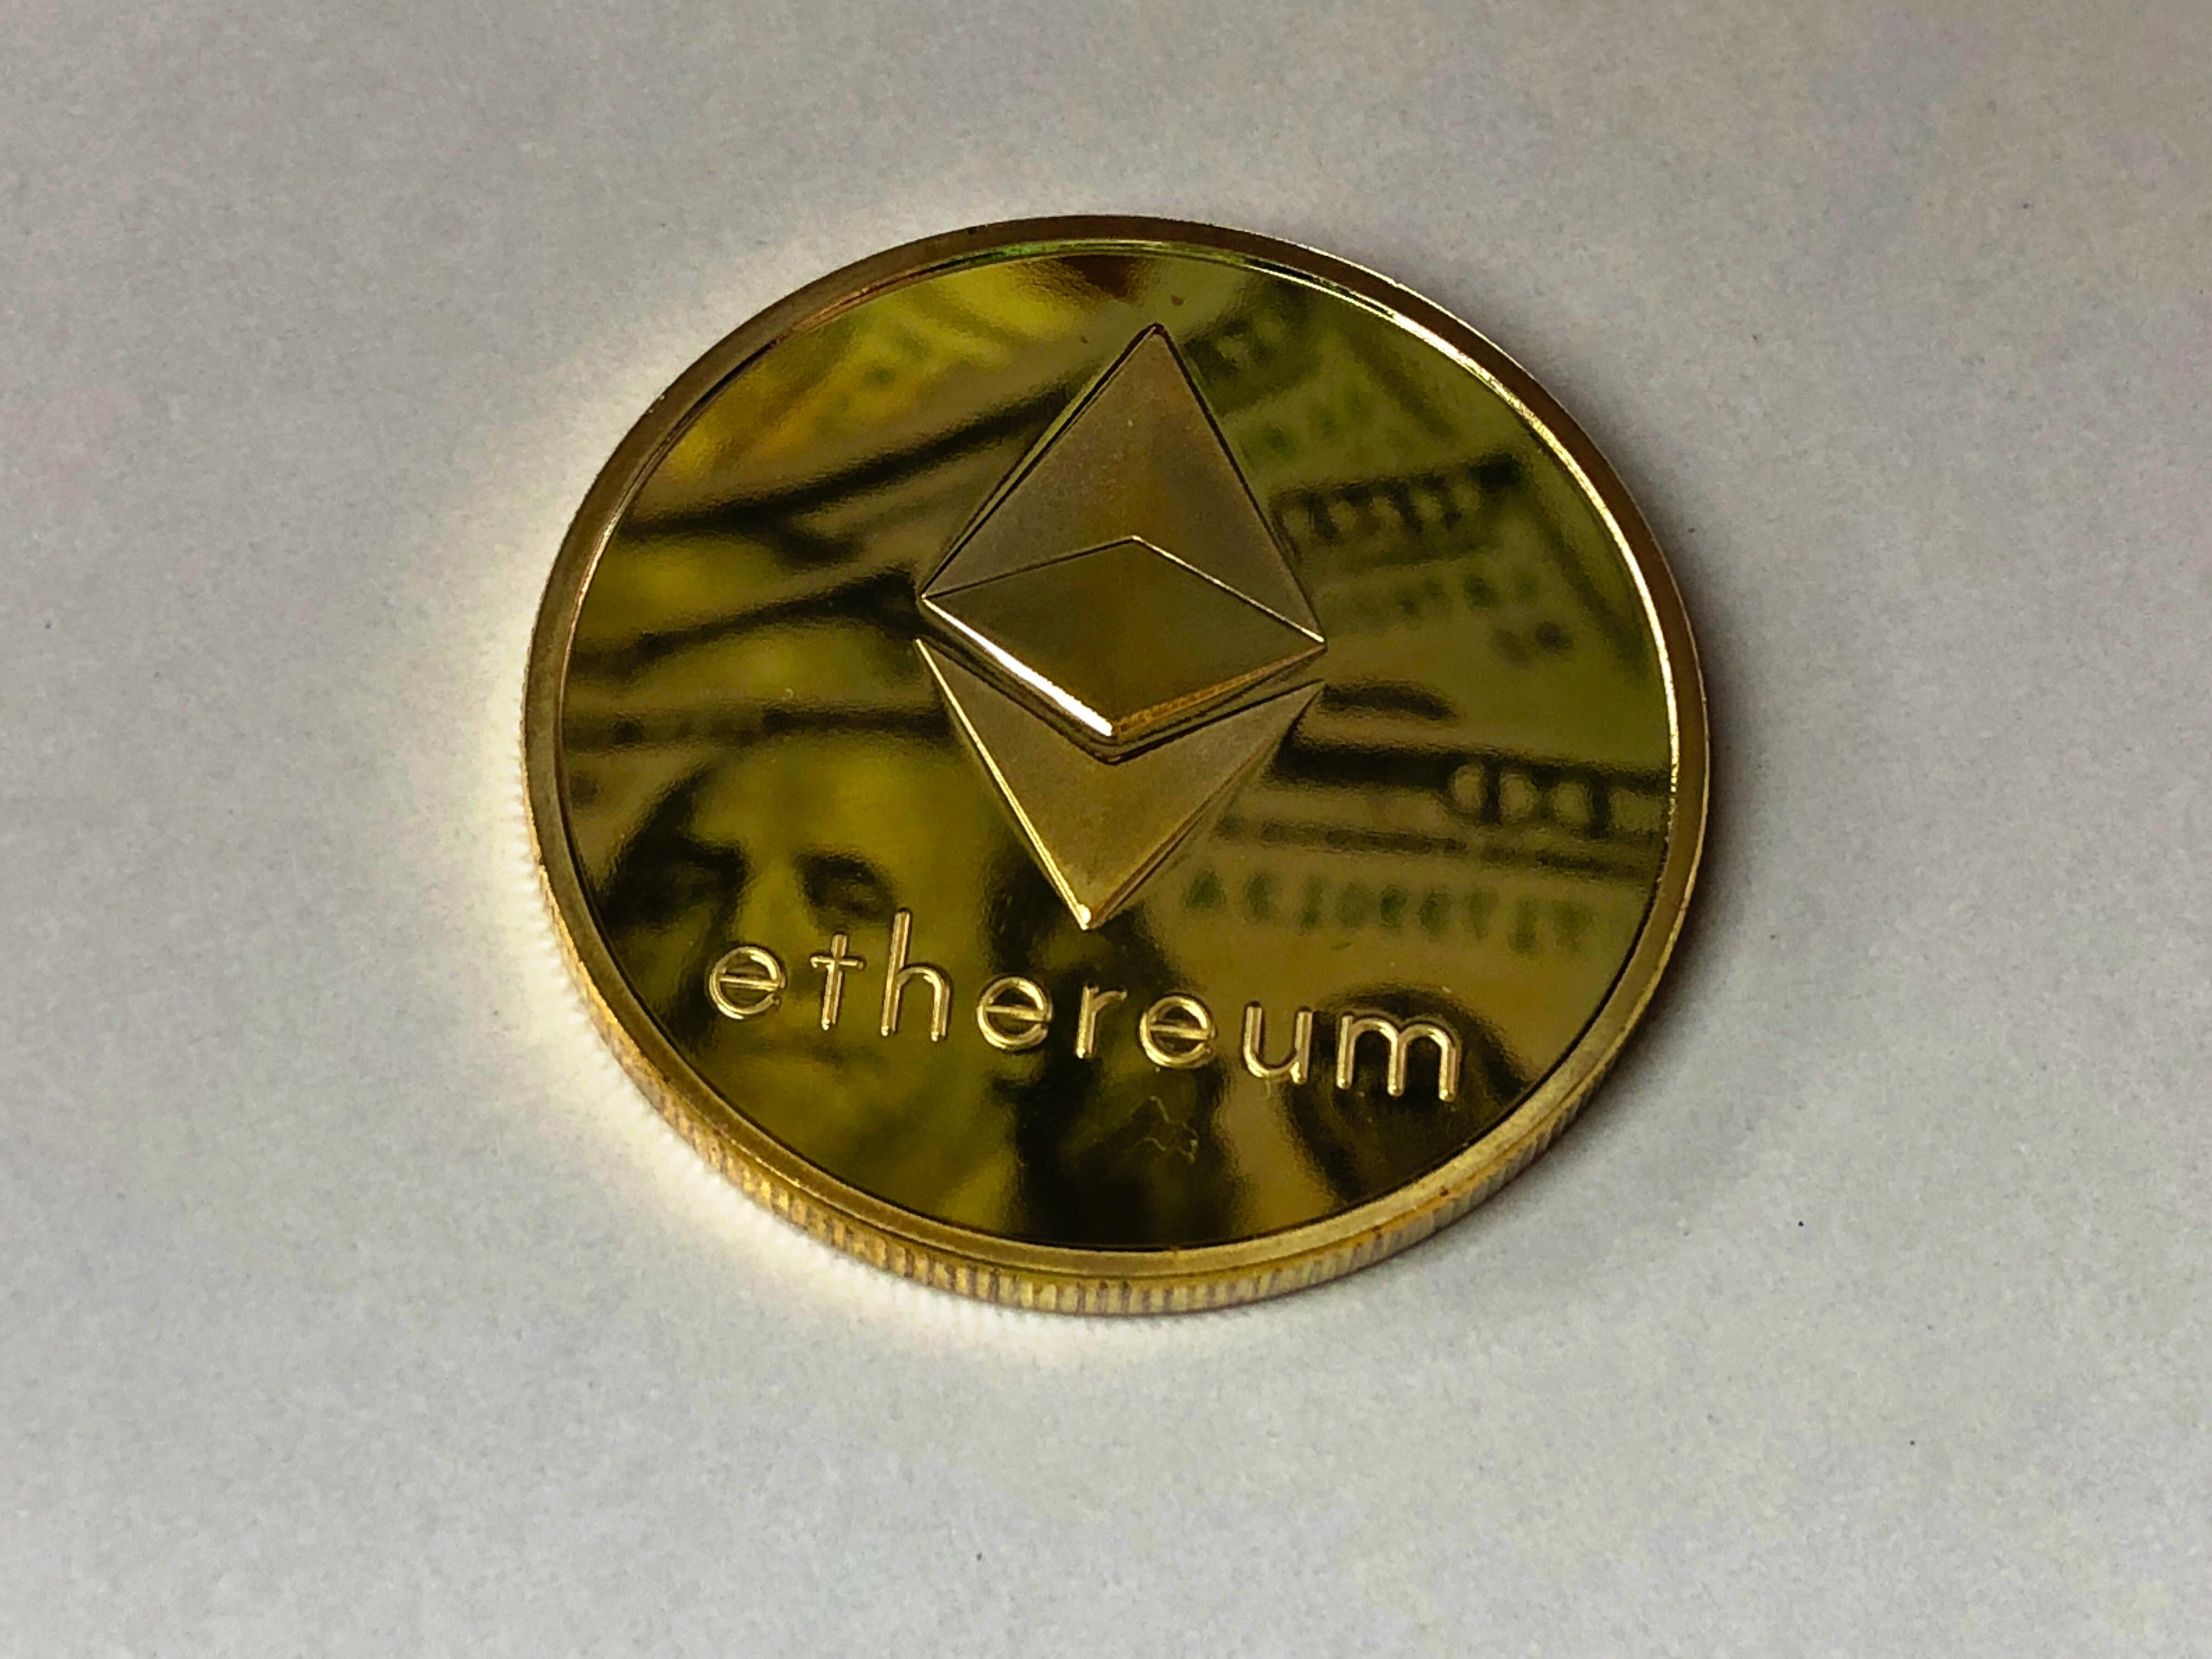 Round Gold-colored Ethereum Ornament, Achievement, Investment, Time, Text, HQ Photo